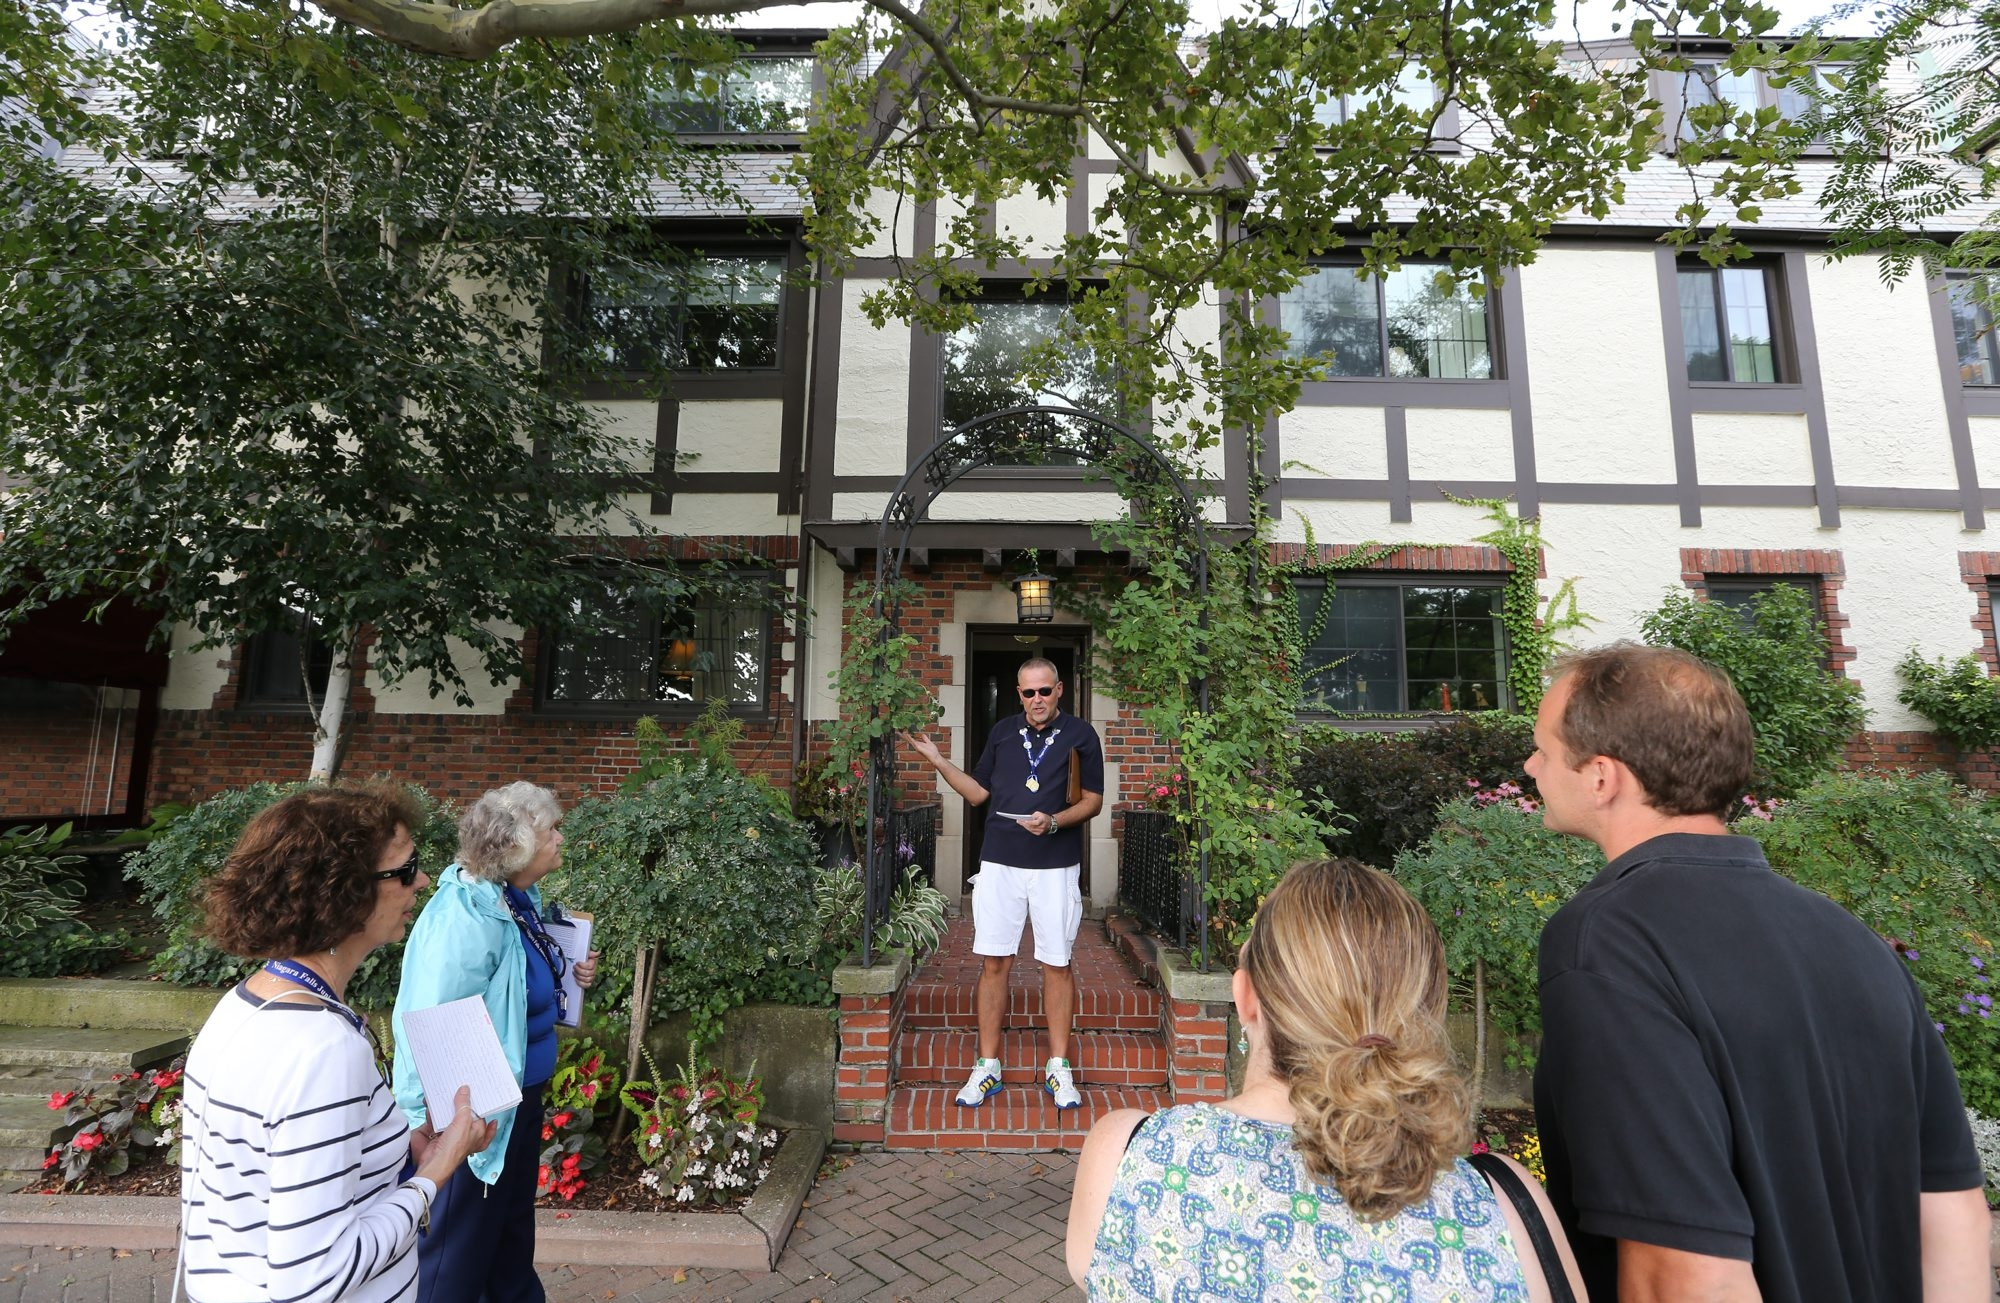 Tour guide Tom Batt, a member of the staff of certified docents trained by Preservation Buffalo Niagara, explains the Red Coach Inn's role in Niagara Falls over the years to a group taking the new walking tour that focuses on culture, history and architecture.